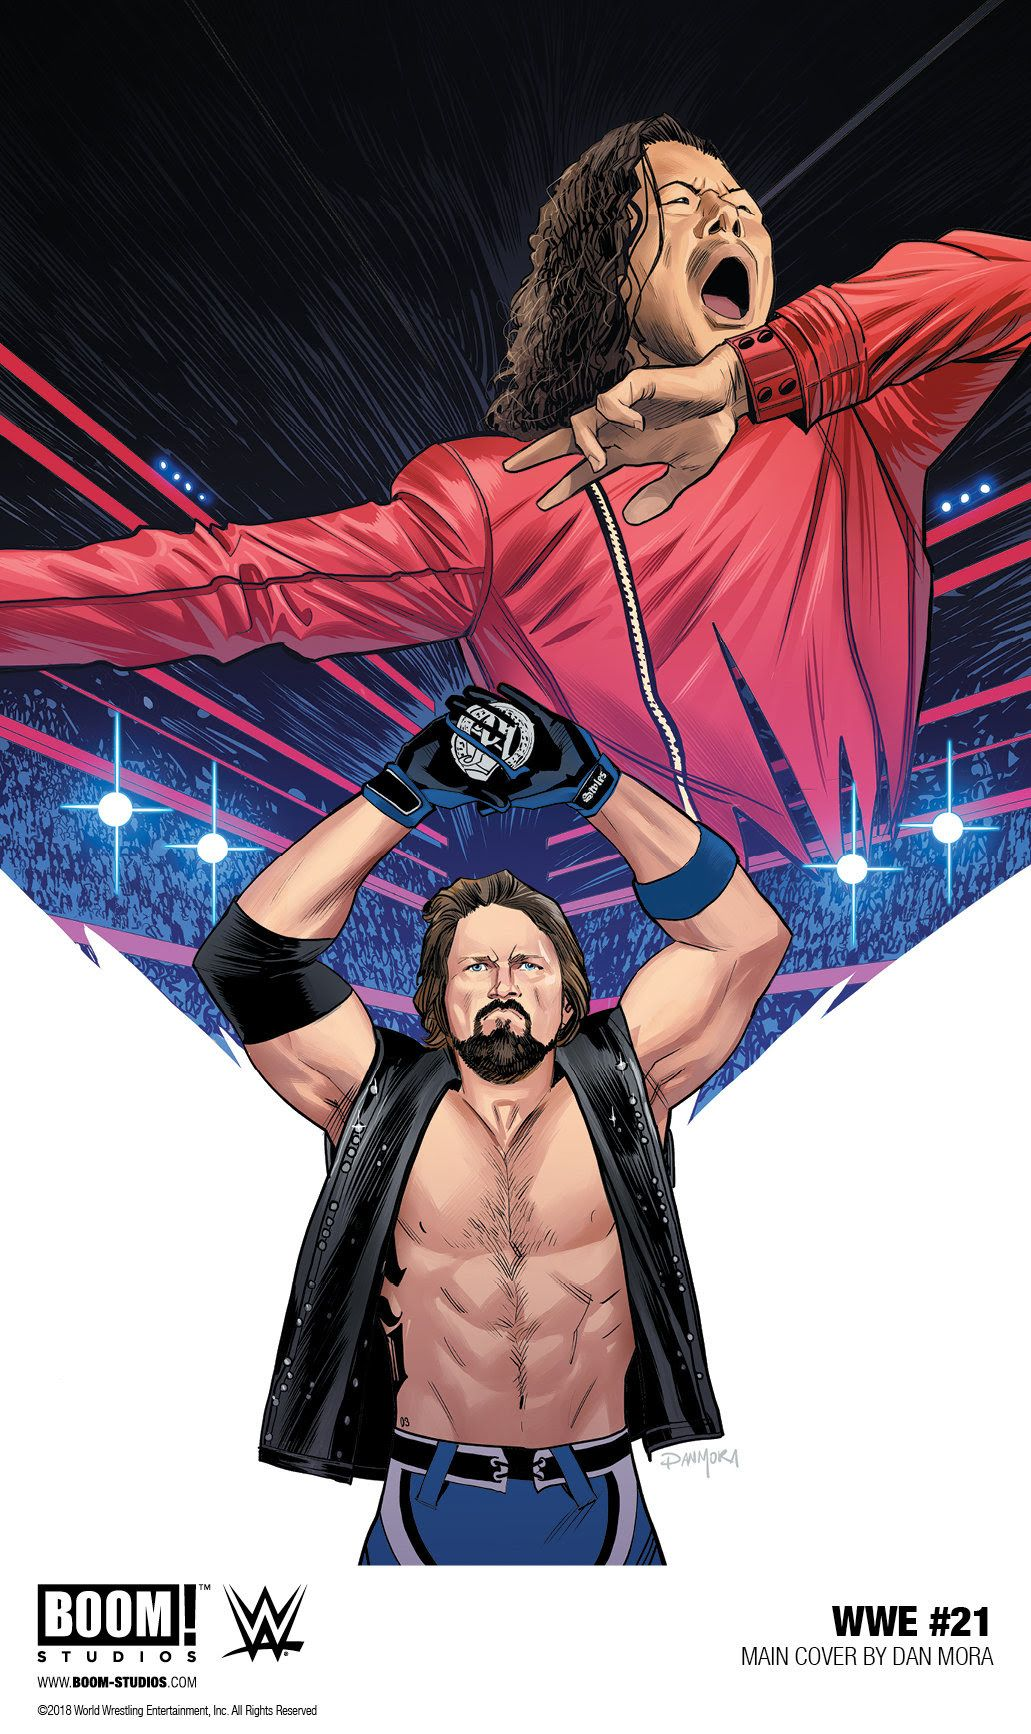 Press Release Wwe Superstar The Phenomenal One Aj Styles To Be Featured In Wwe 21 Https Comicbastard Wwe Superstars Wwe Logo Wwe Superstar Roman Reigns